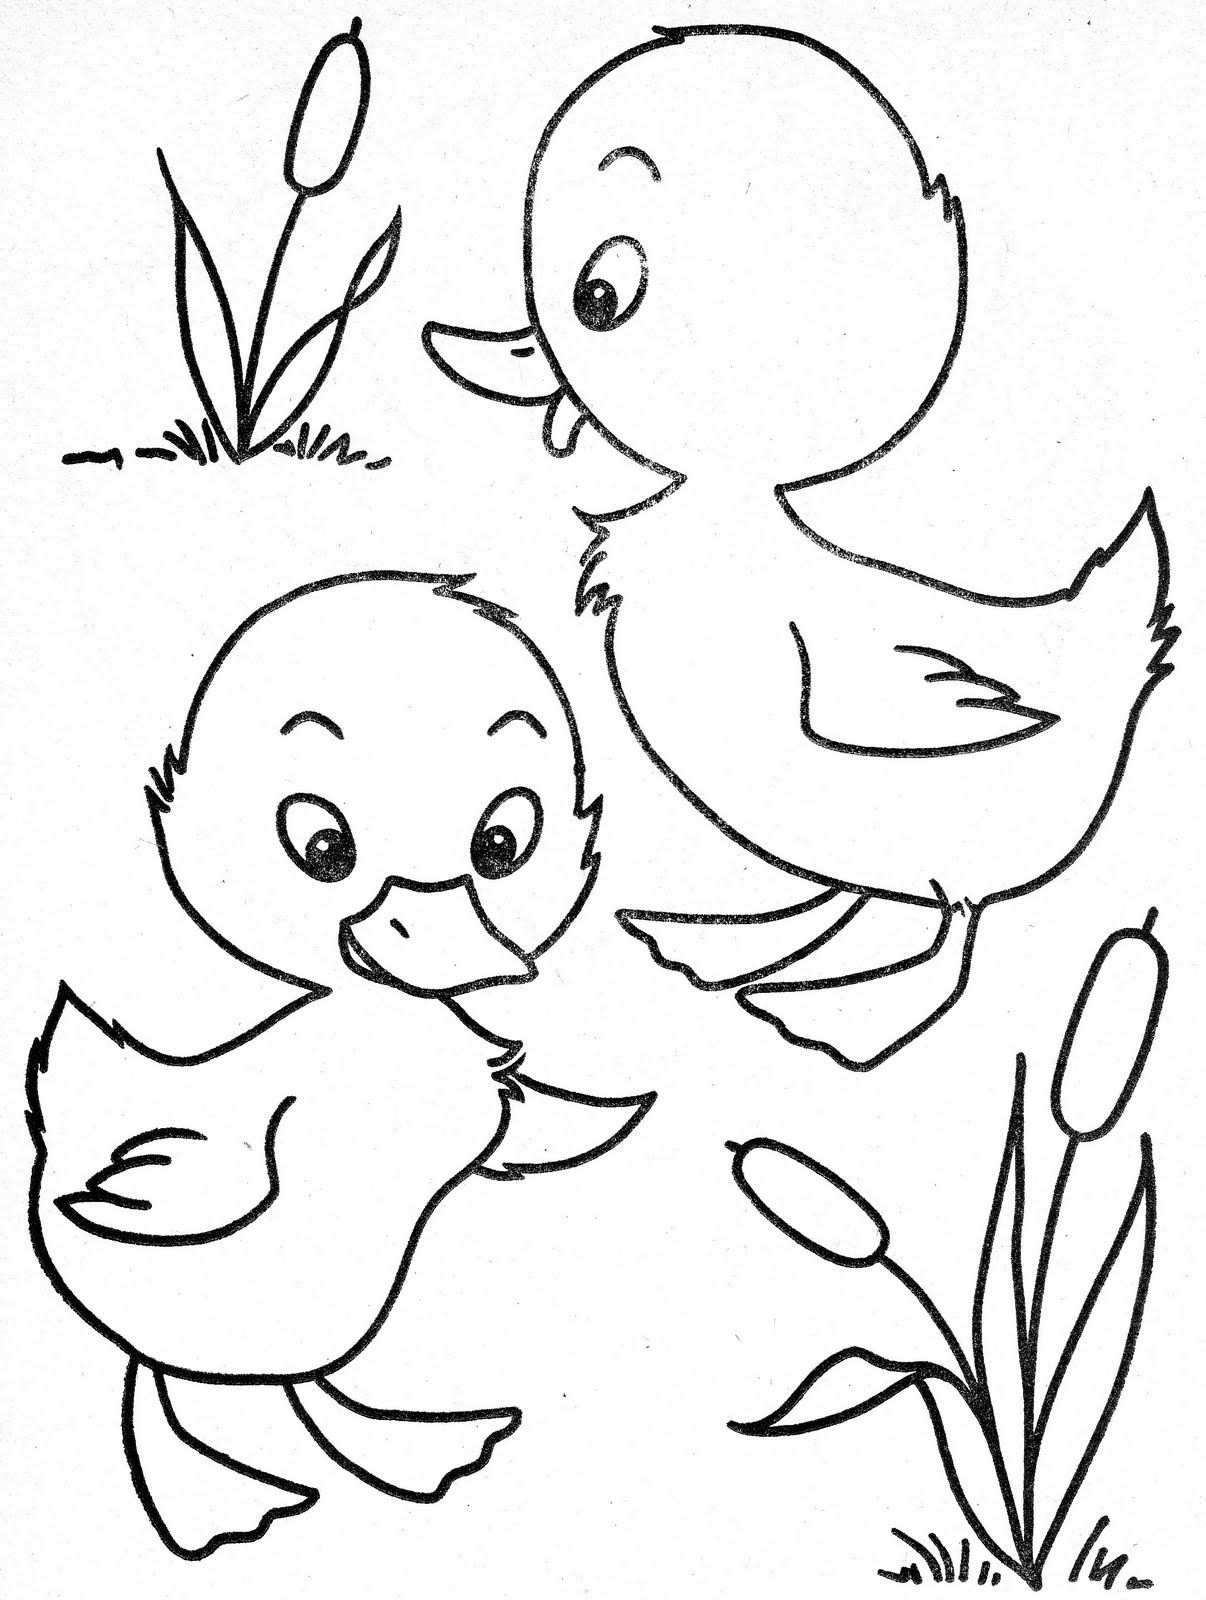 coloring pages duckies - photo#7